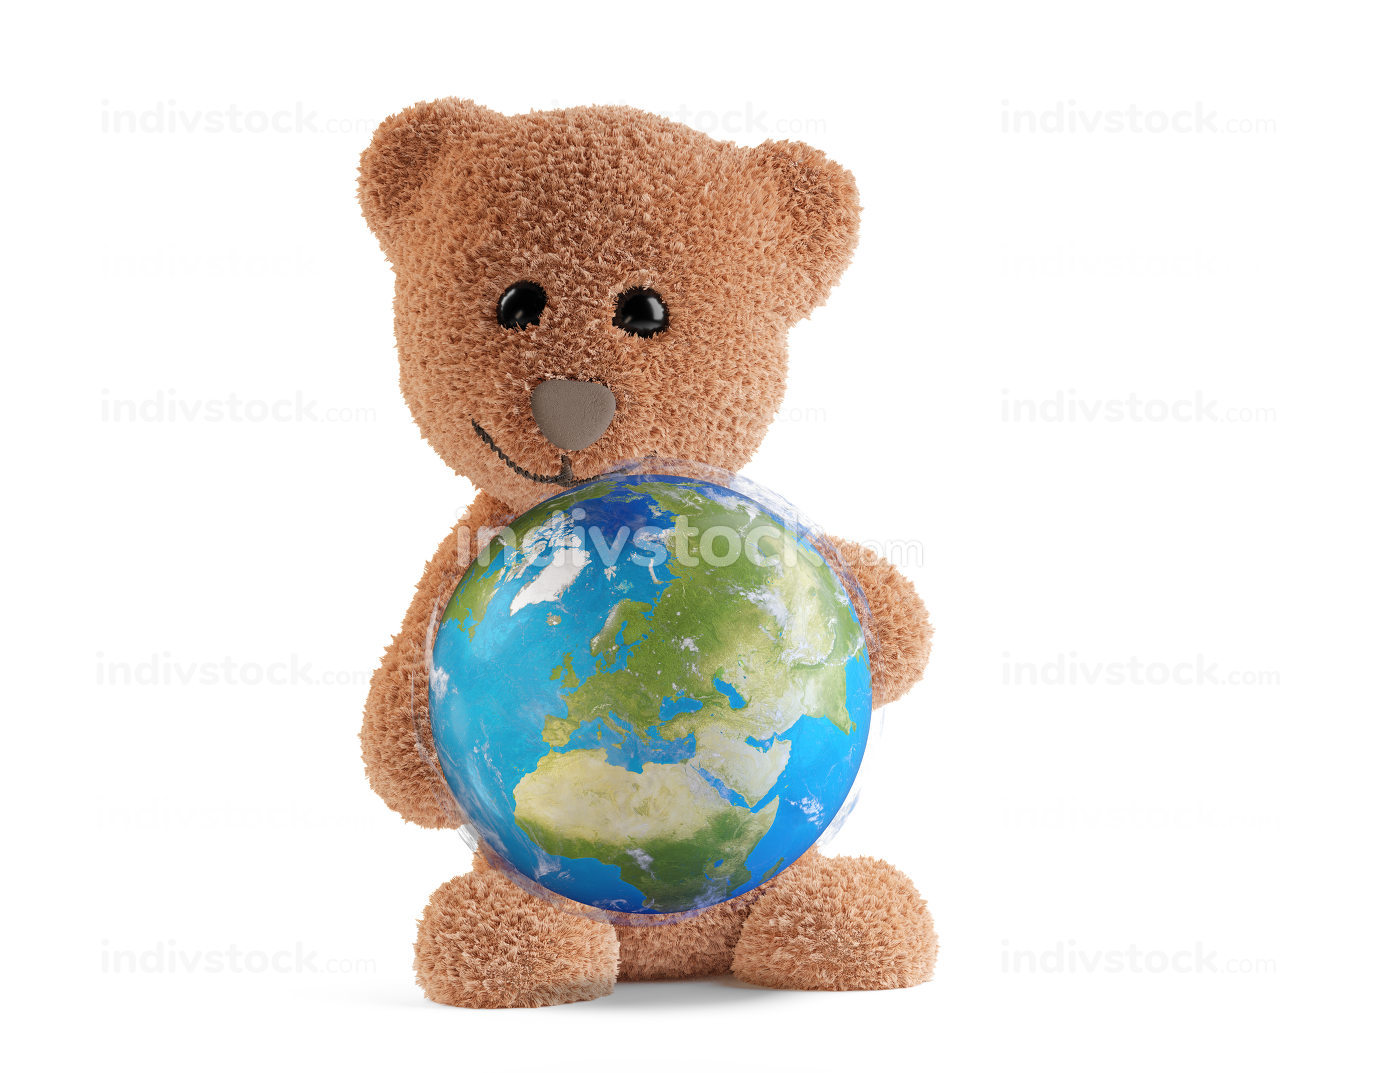 cute fluffy brown teddy bear with planet earth globe focus on Europe. 3d-illustration. elements of this image furnished by NASA